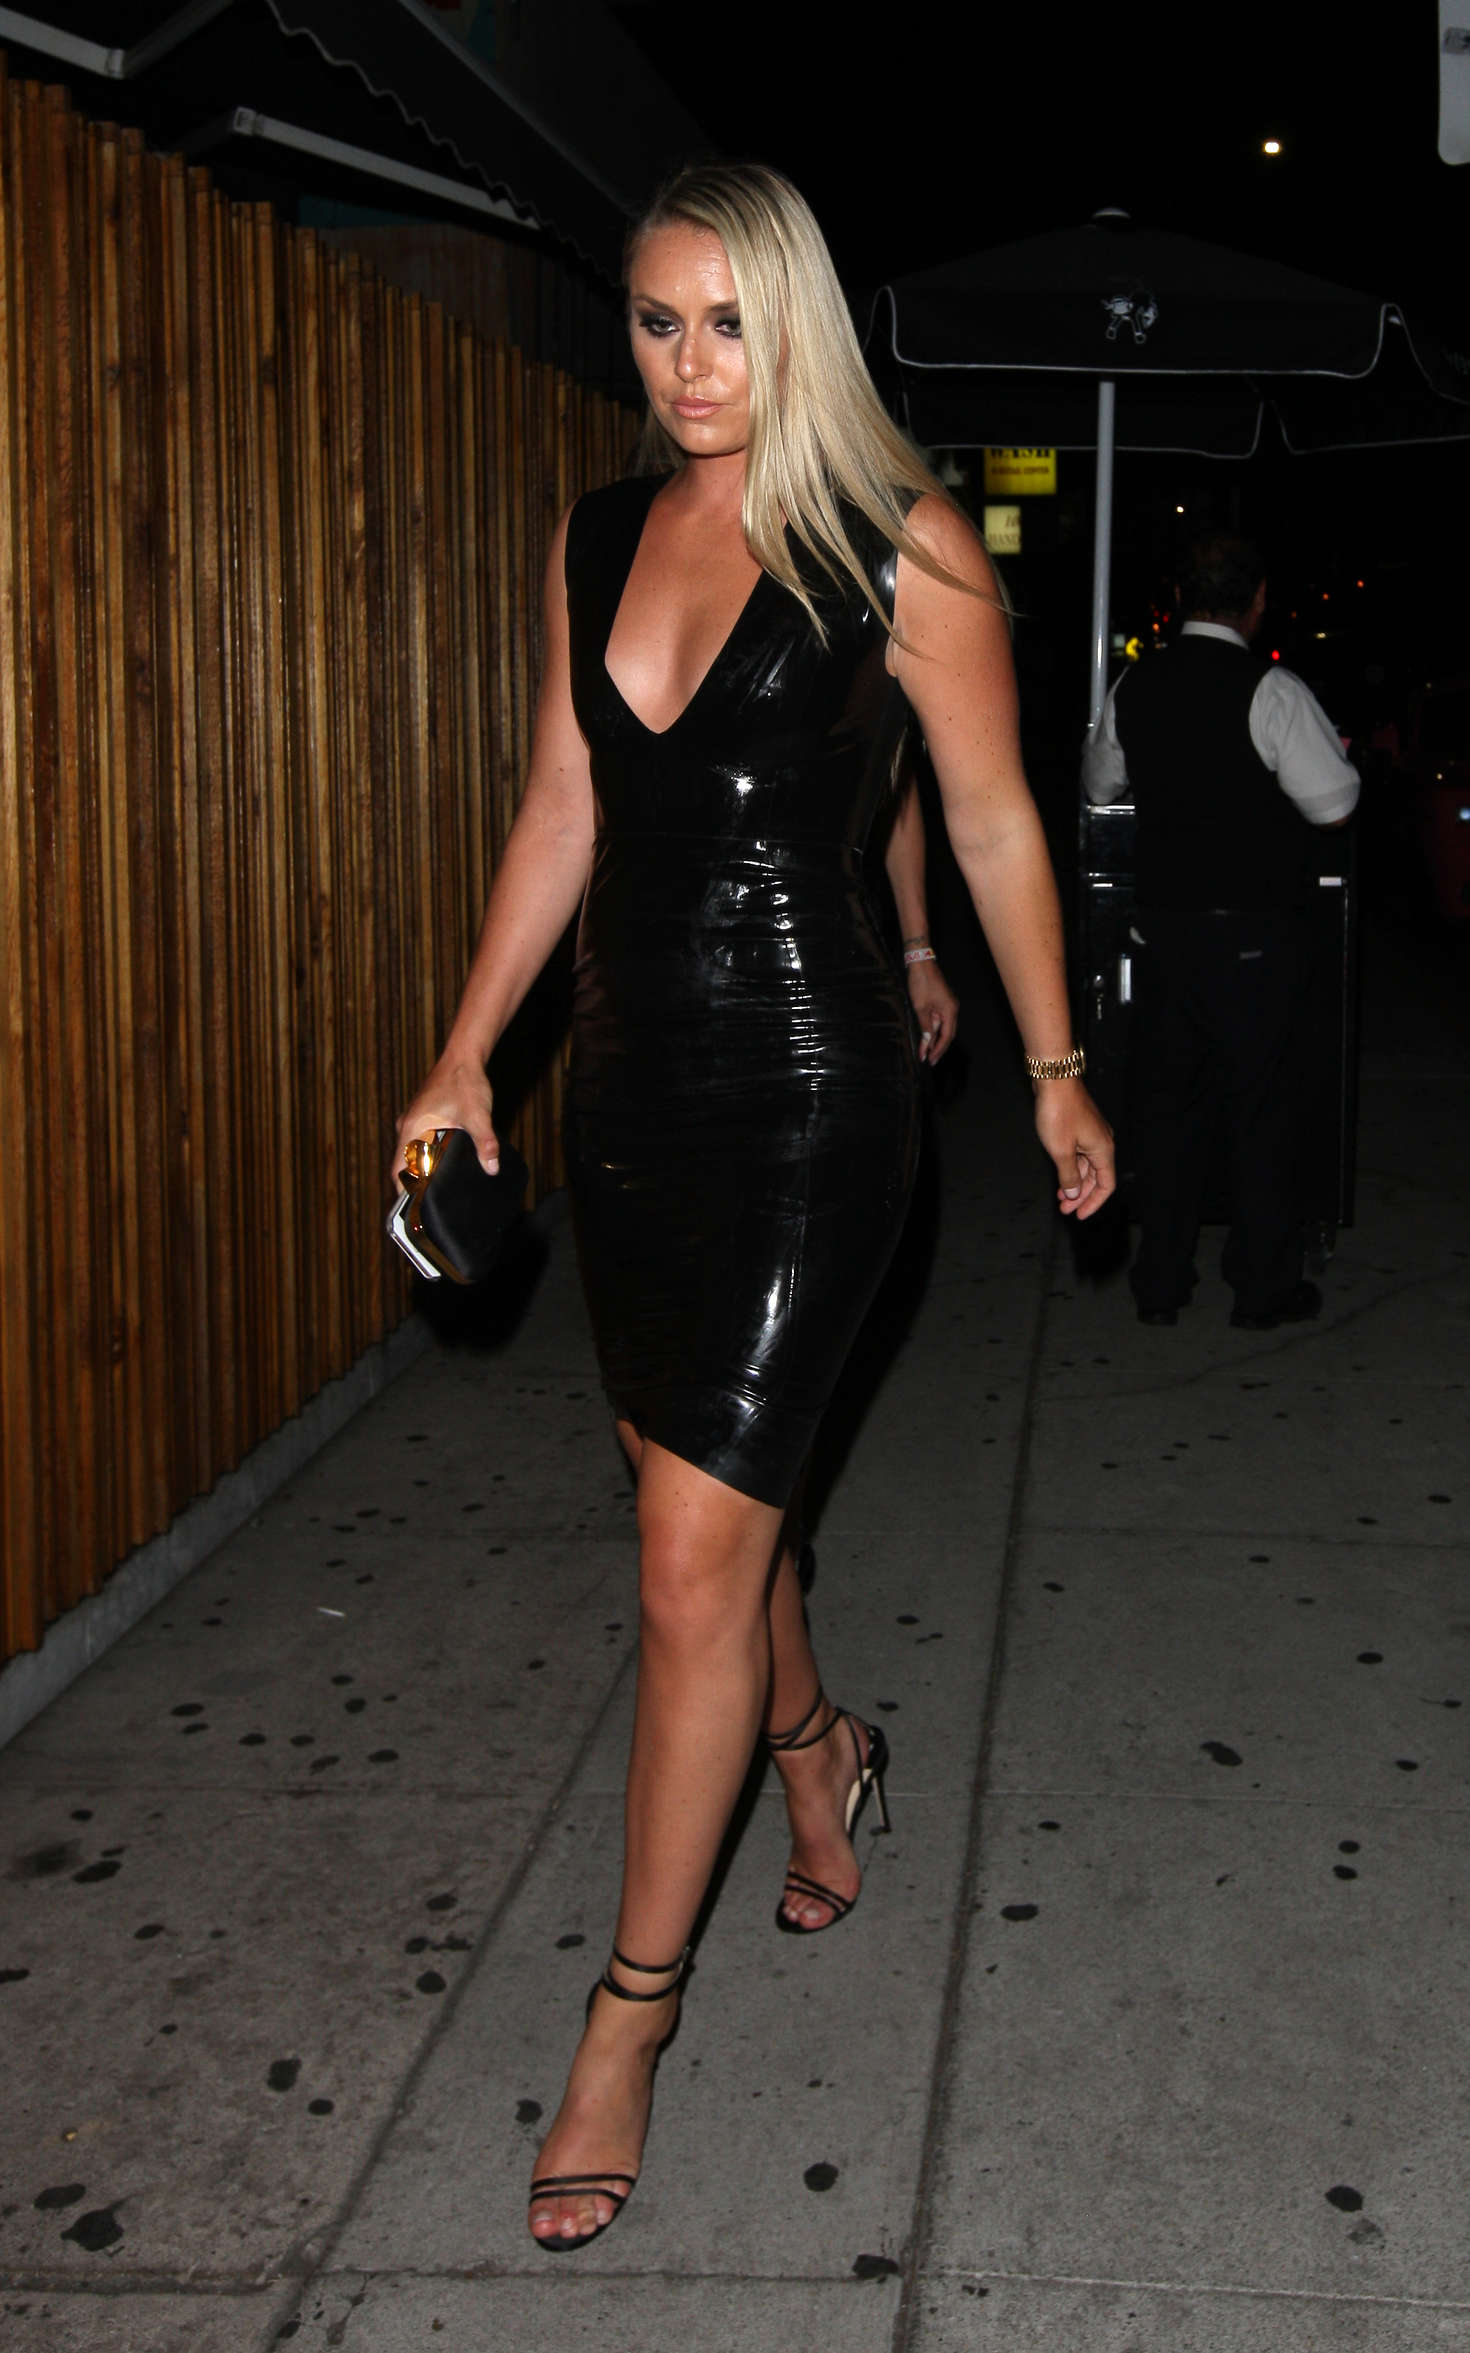 Lindsey Vonn In Tight Leather Dress 07 Gotceleb